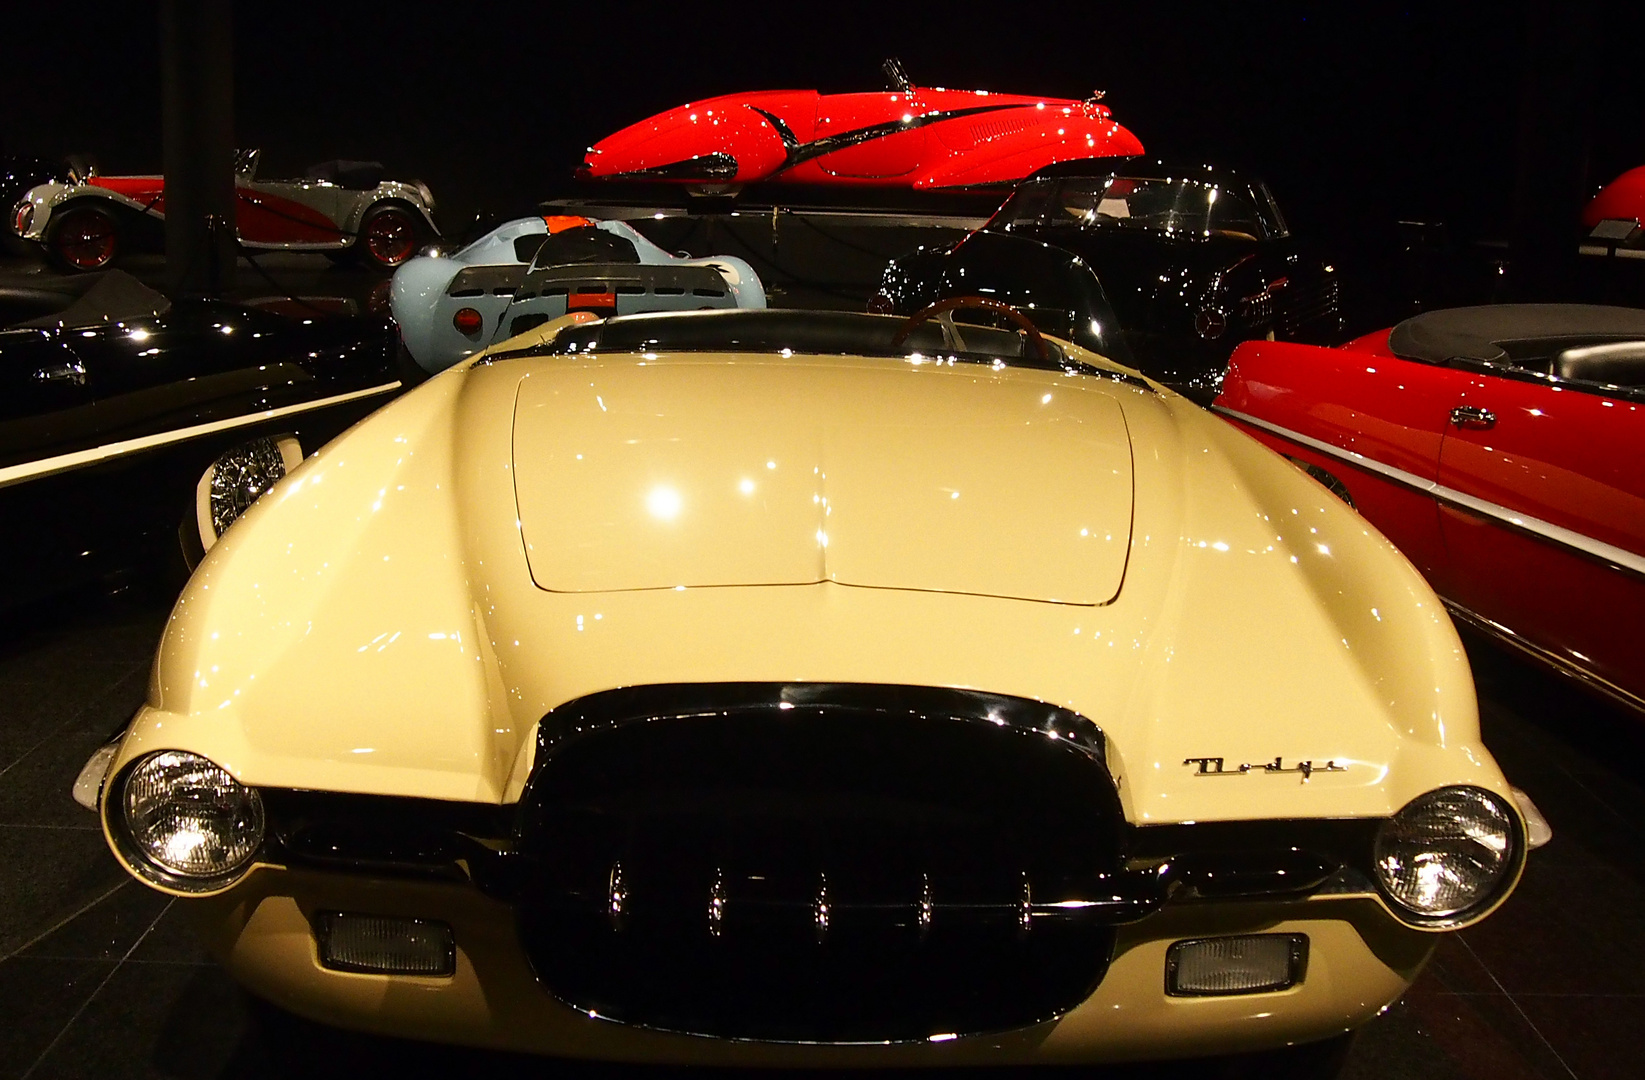 Behring Automuseum